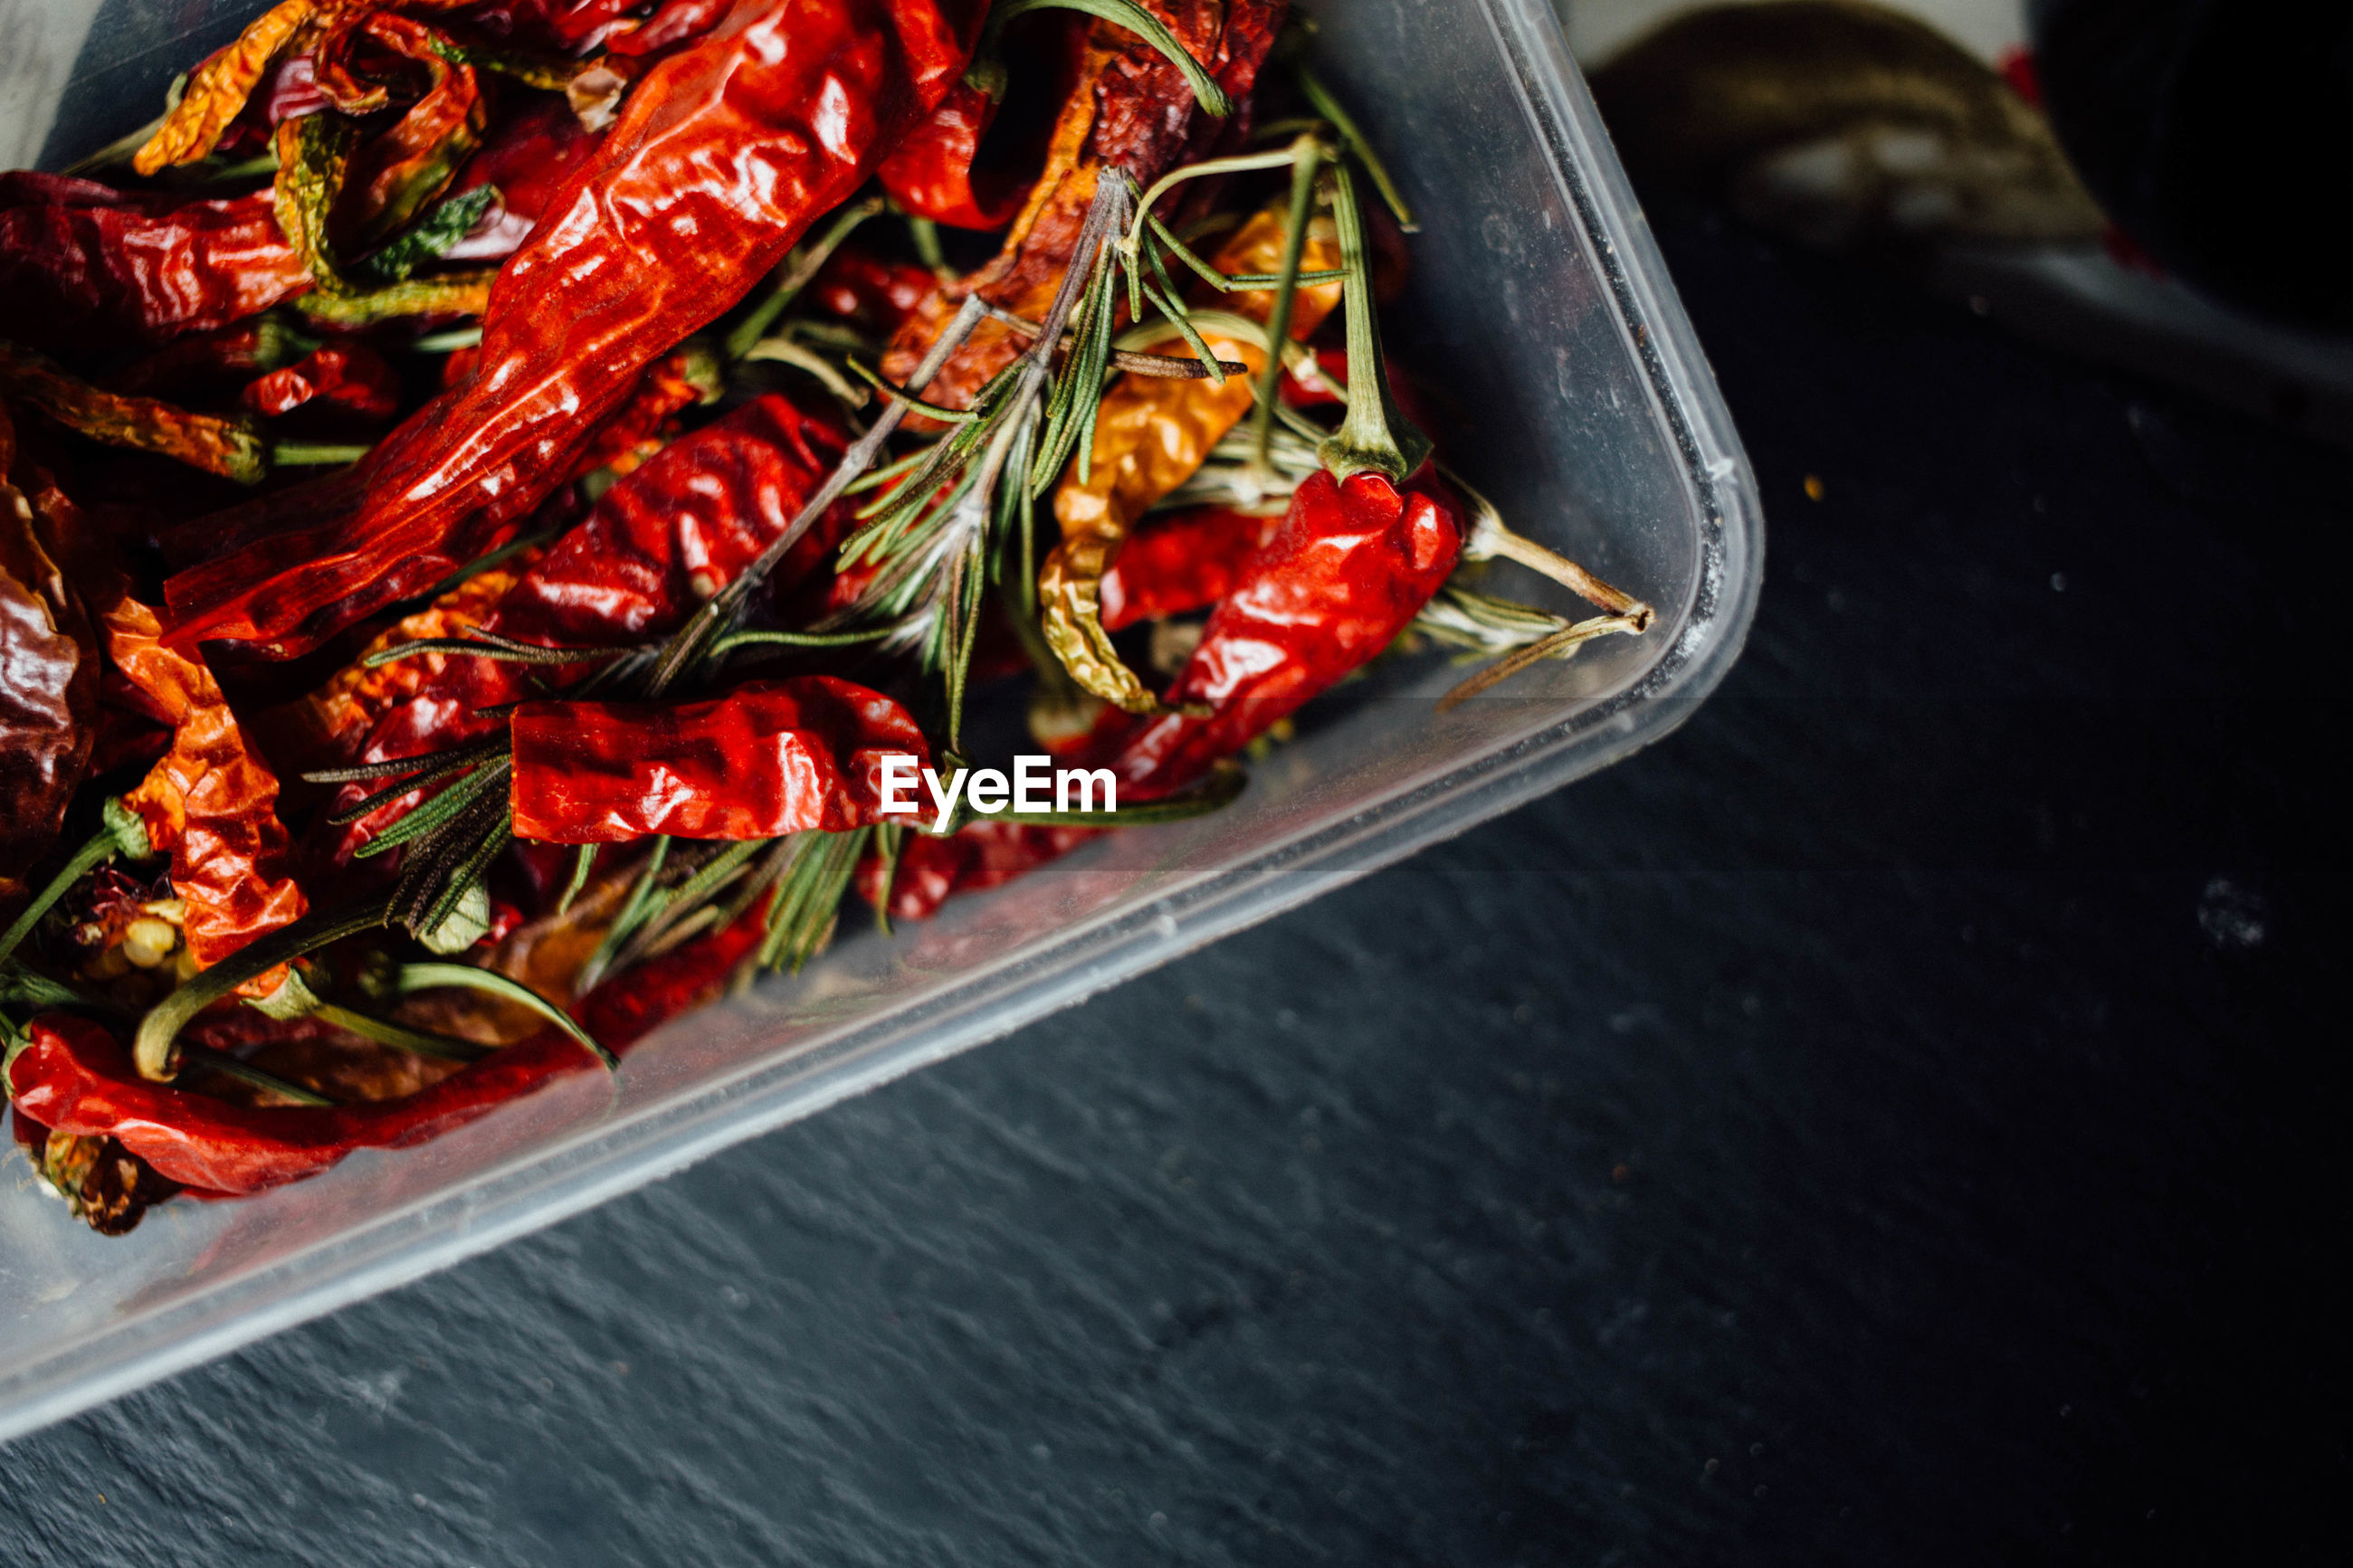 Directly above shot of red chili peppers and rosemary leaves in container on table